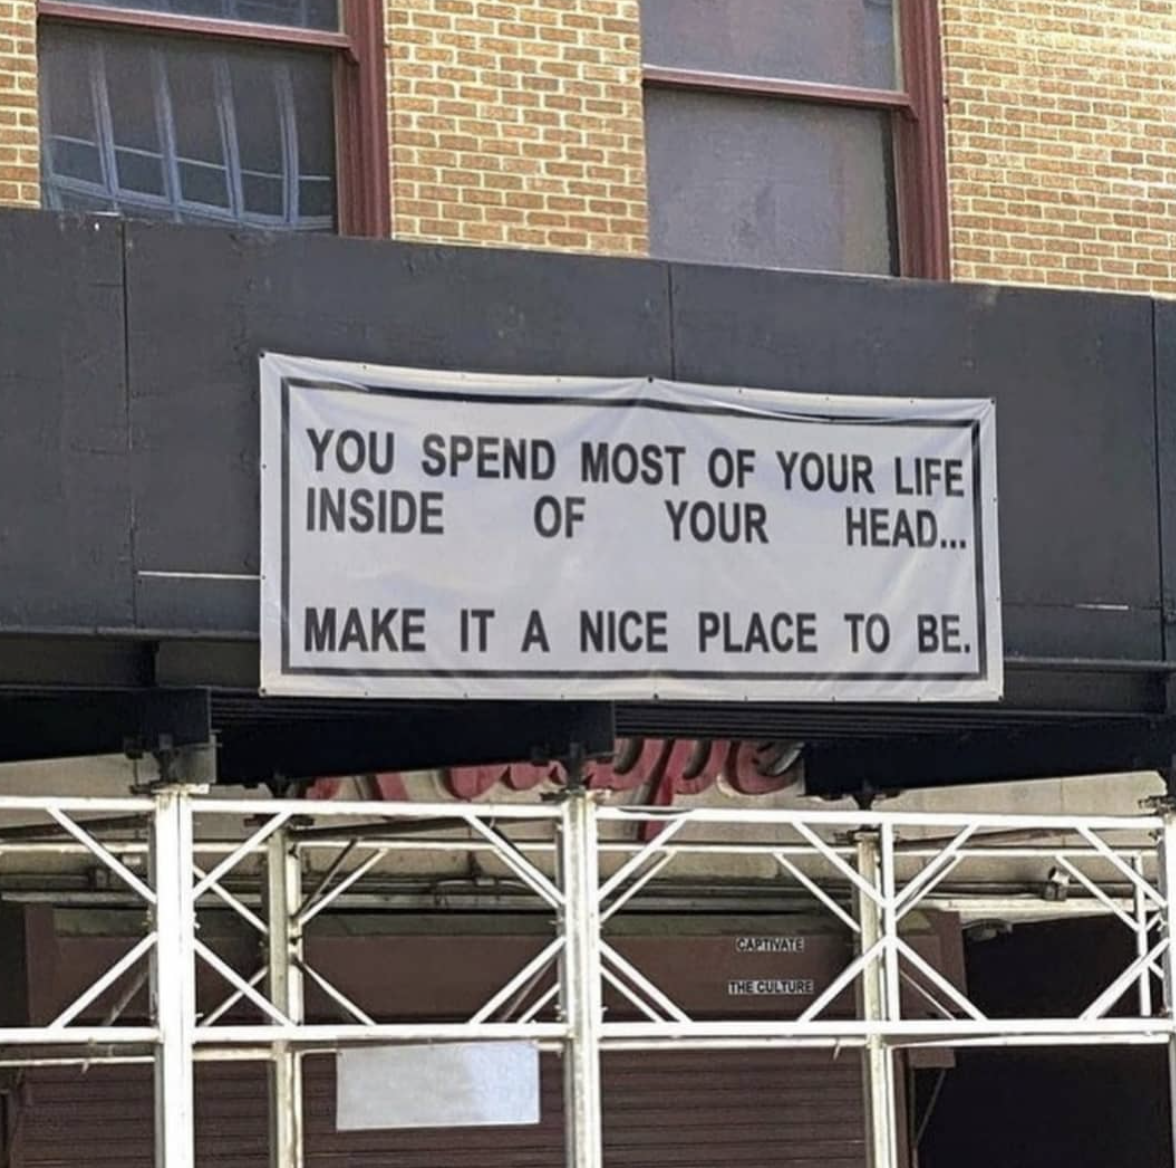 [Image] You spend most of your life in your head. Make it a good place to live.